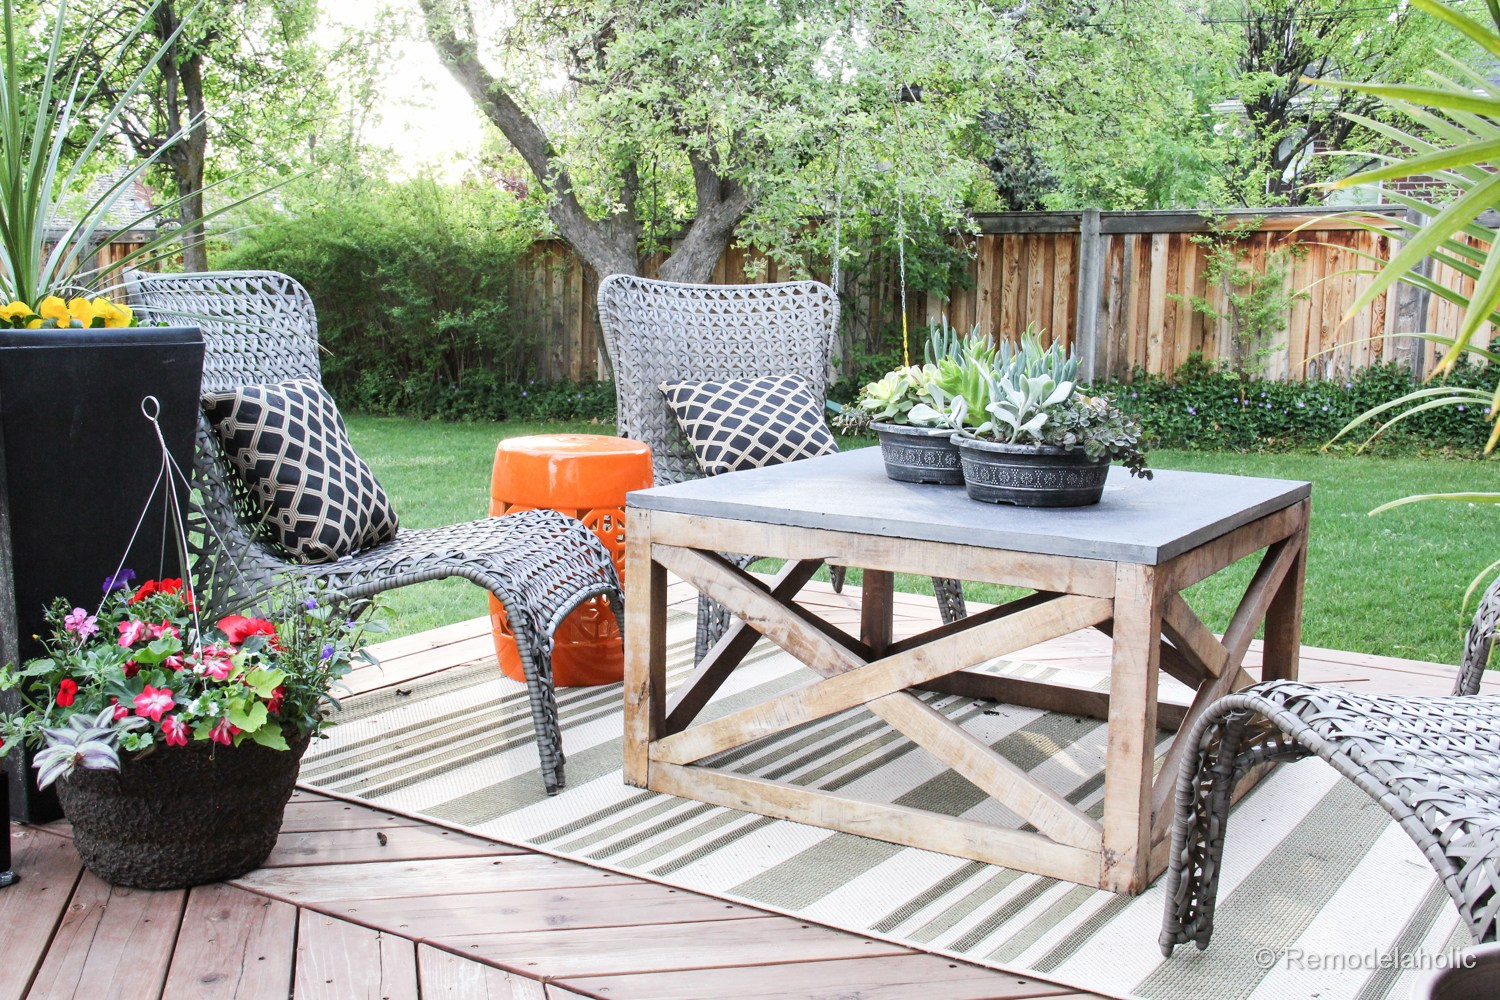 Remodelaholic | Build a Square Outdoor DIY Coffee Table ...